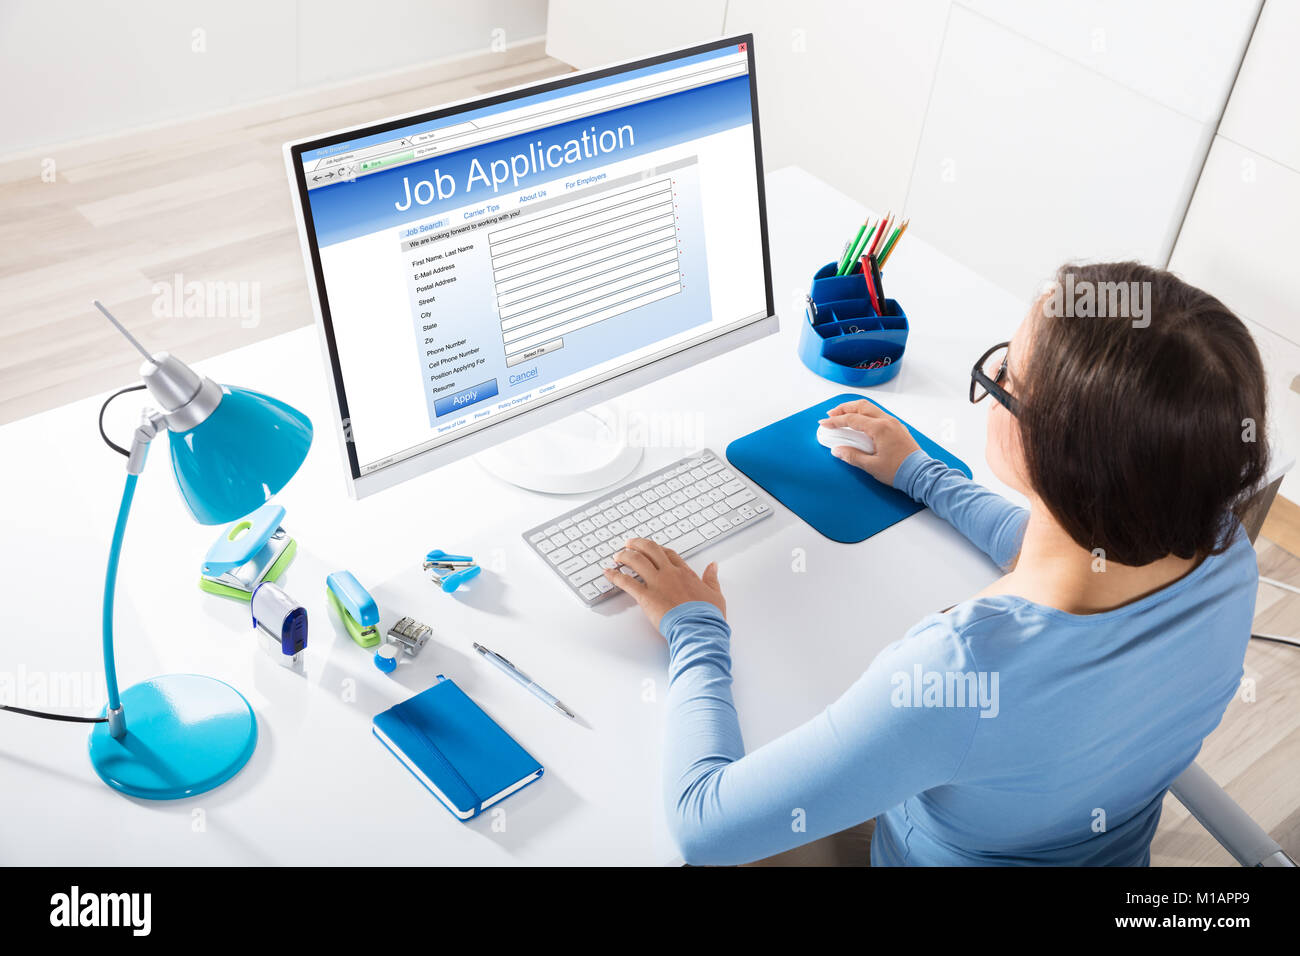 Elevated View Of A Businesswoman Feeling Job Application On Computer In Office - Stock Image